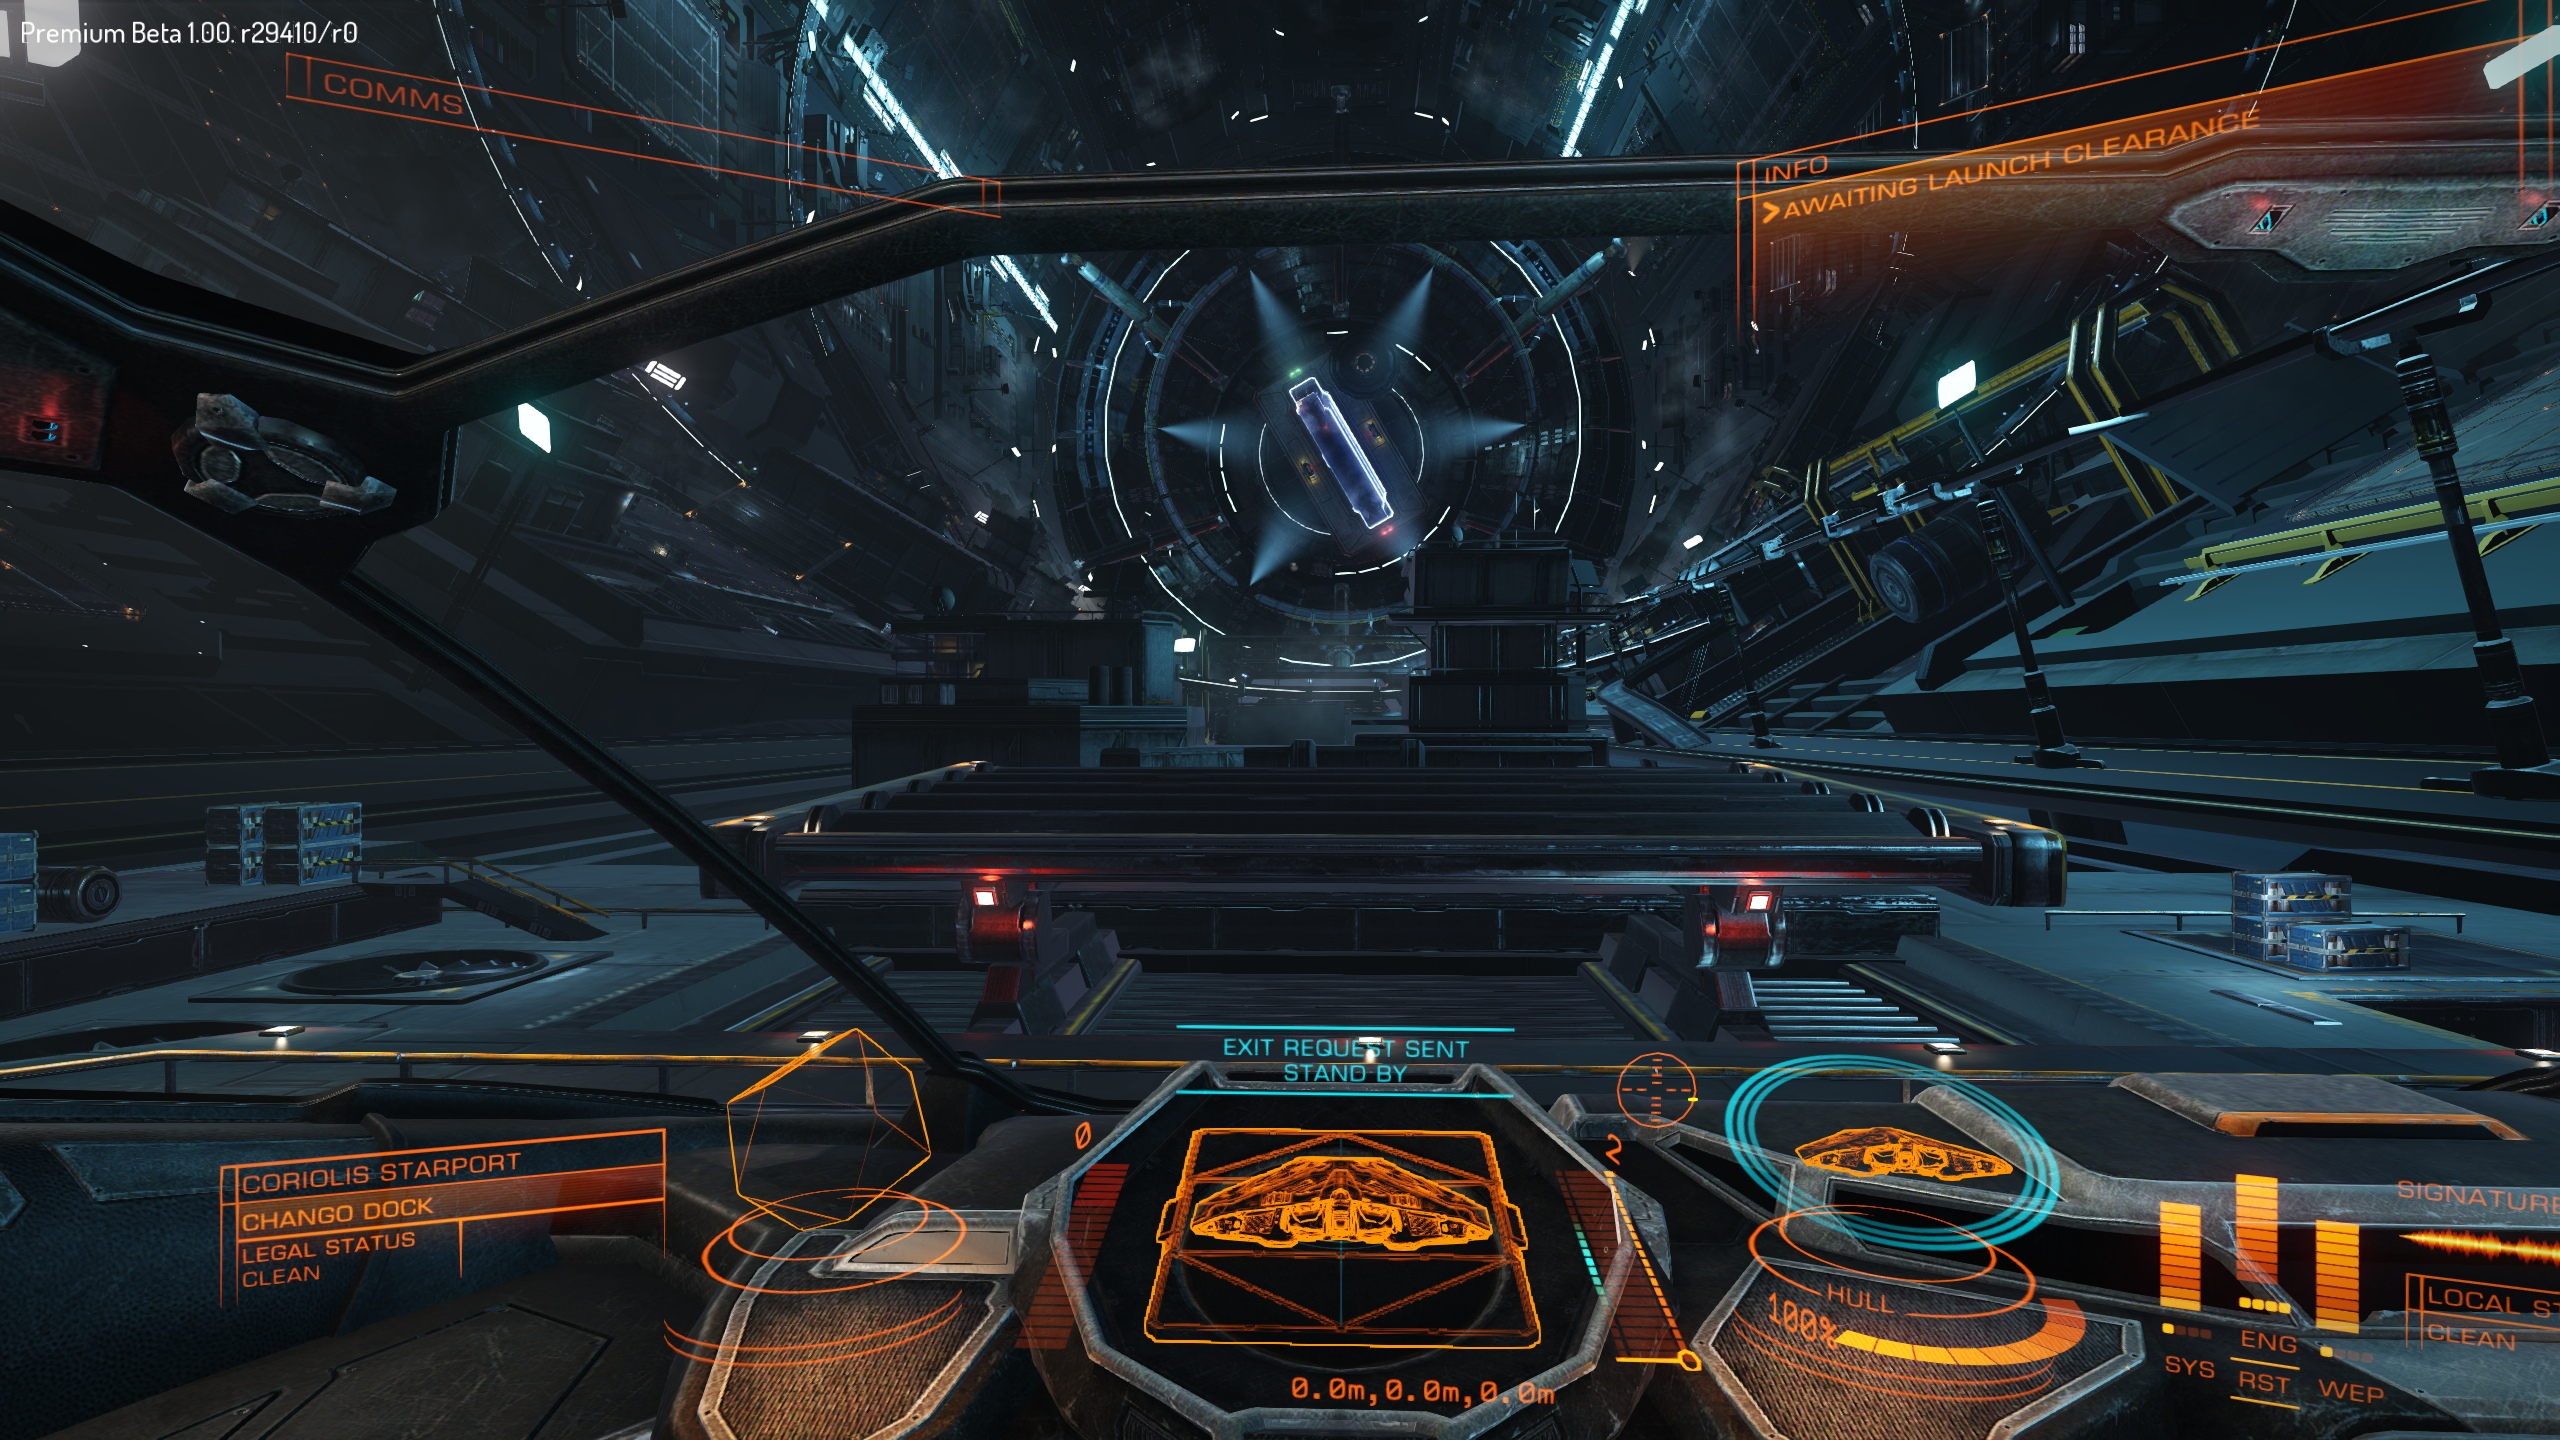 A Few Weeks In Deep Space With The Elite Dangerous Premium Beta